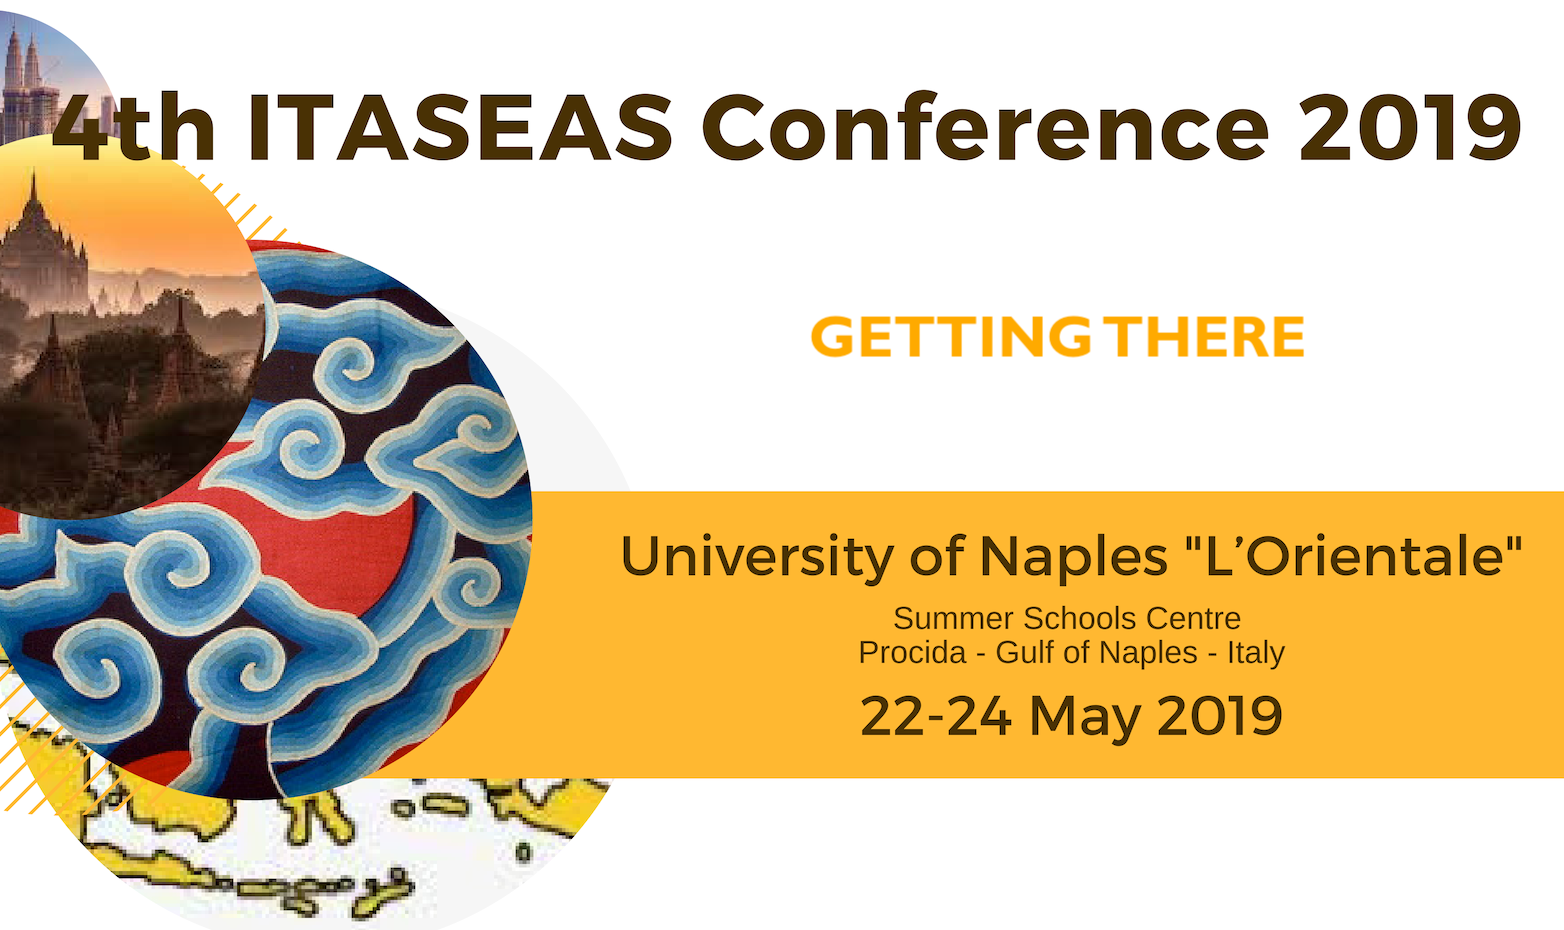 GETTING THERE 4th ITASEAS CONFERENCE